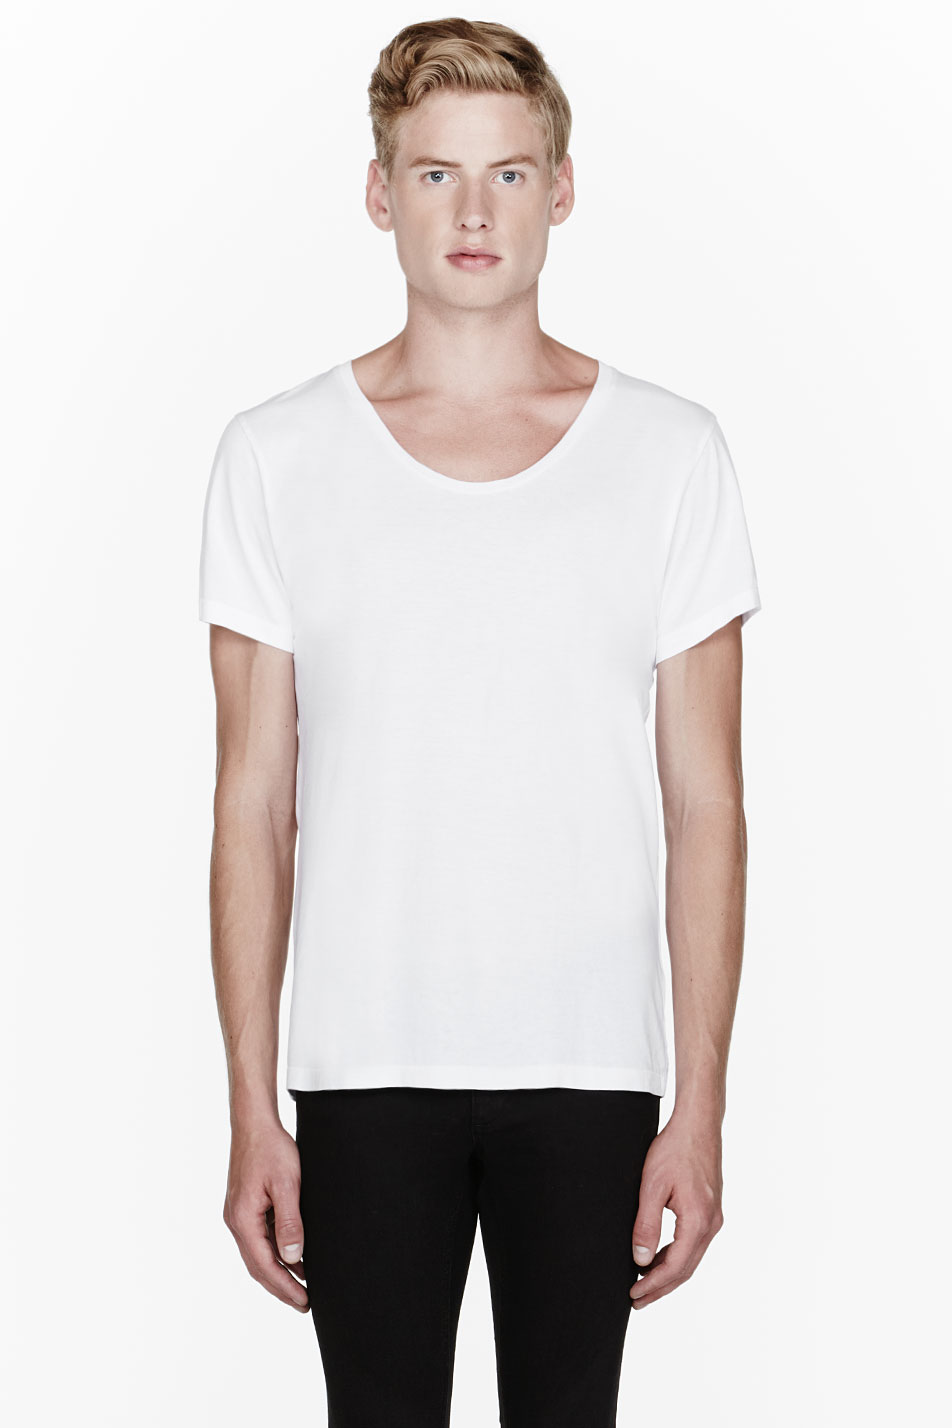 acne white scoop neck soletopia